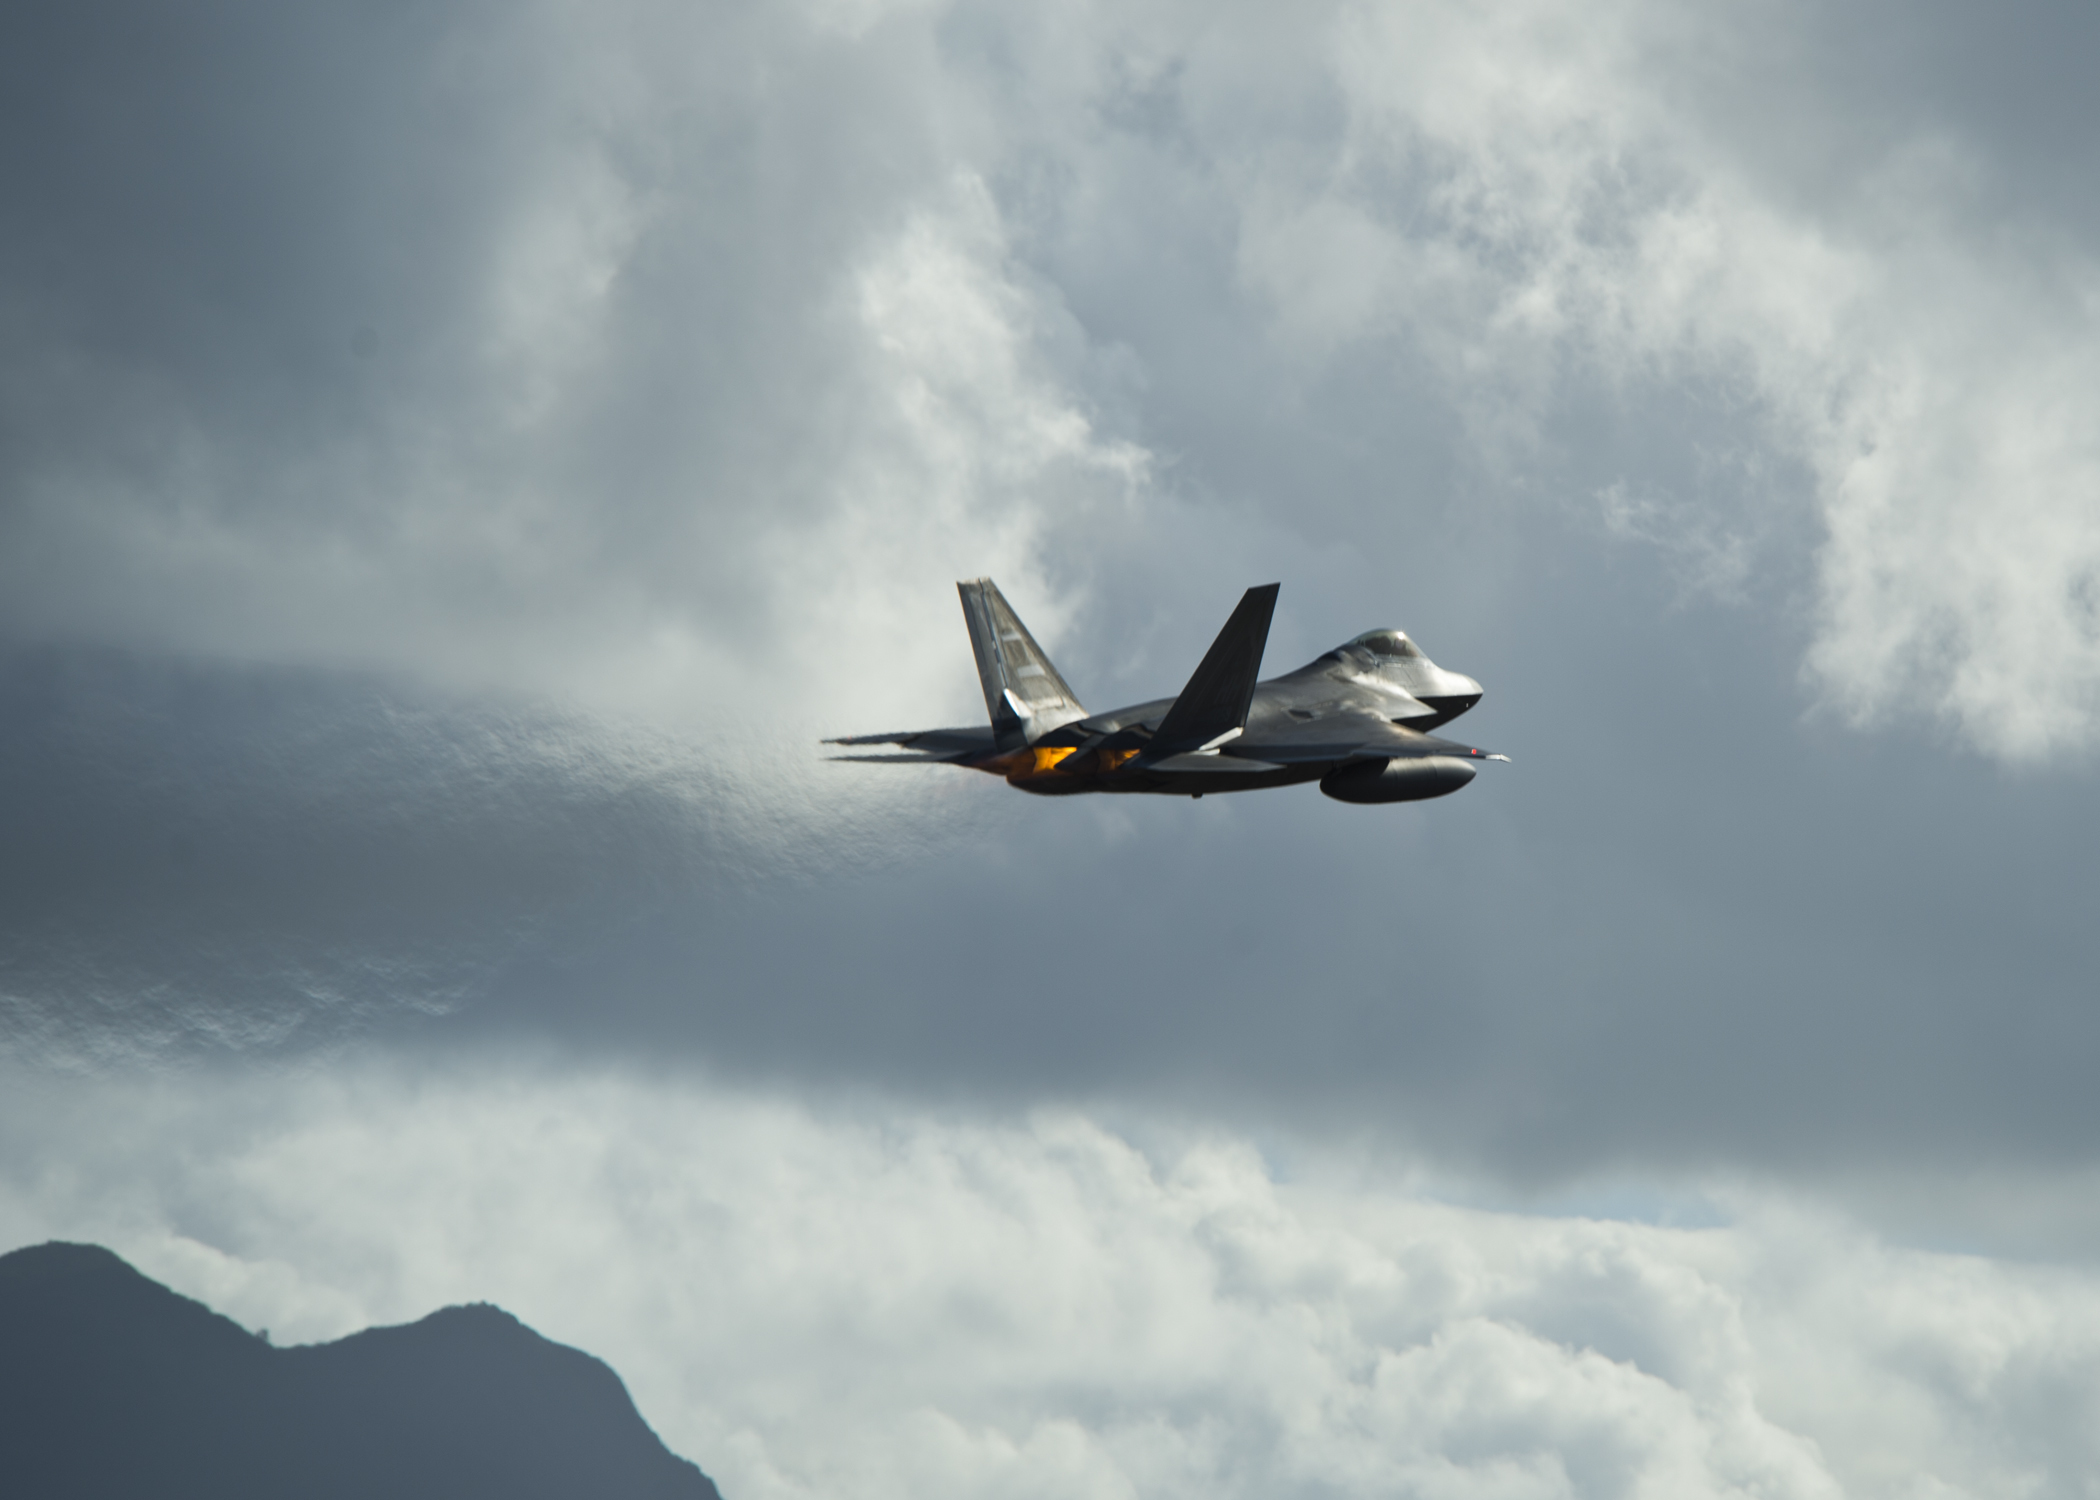 A United States Air Force F-22 Raptor, from the Hawaiian Raptors, takes off from Joint Base Pearl Harbor-Hickam, Hawaii, April 20, 2015. The F-22 Raptor has a range of 1,600 nautical miles with the two external wing fuel tanks attached. (U.S. Air Force photo by Tech. Sgt. Aaron Oelrich/Released)